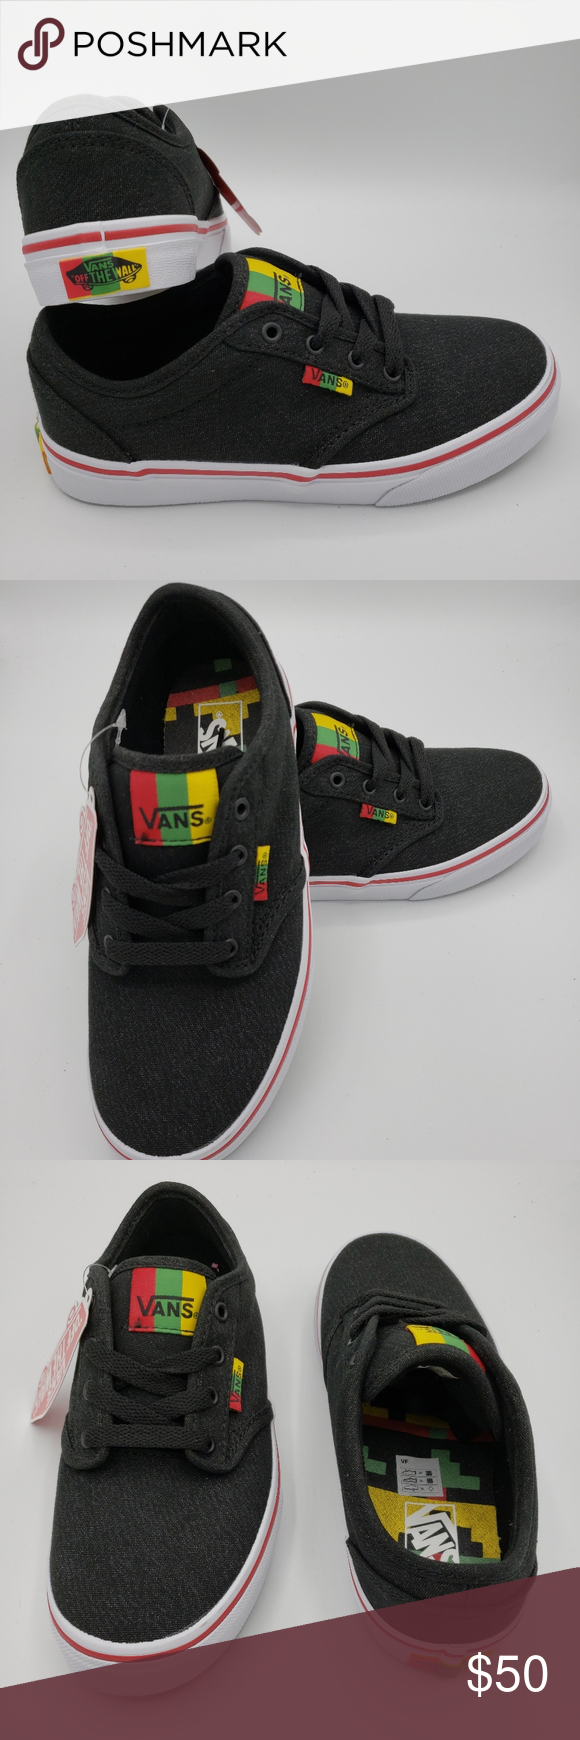 Vans Atwood Rasta Skate Shoes Youth   Skate shoes, Vans, Shoes